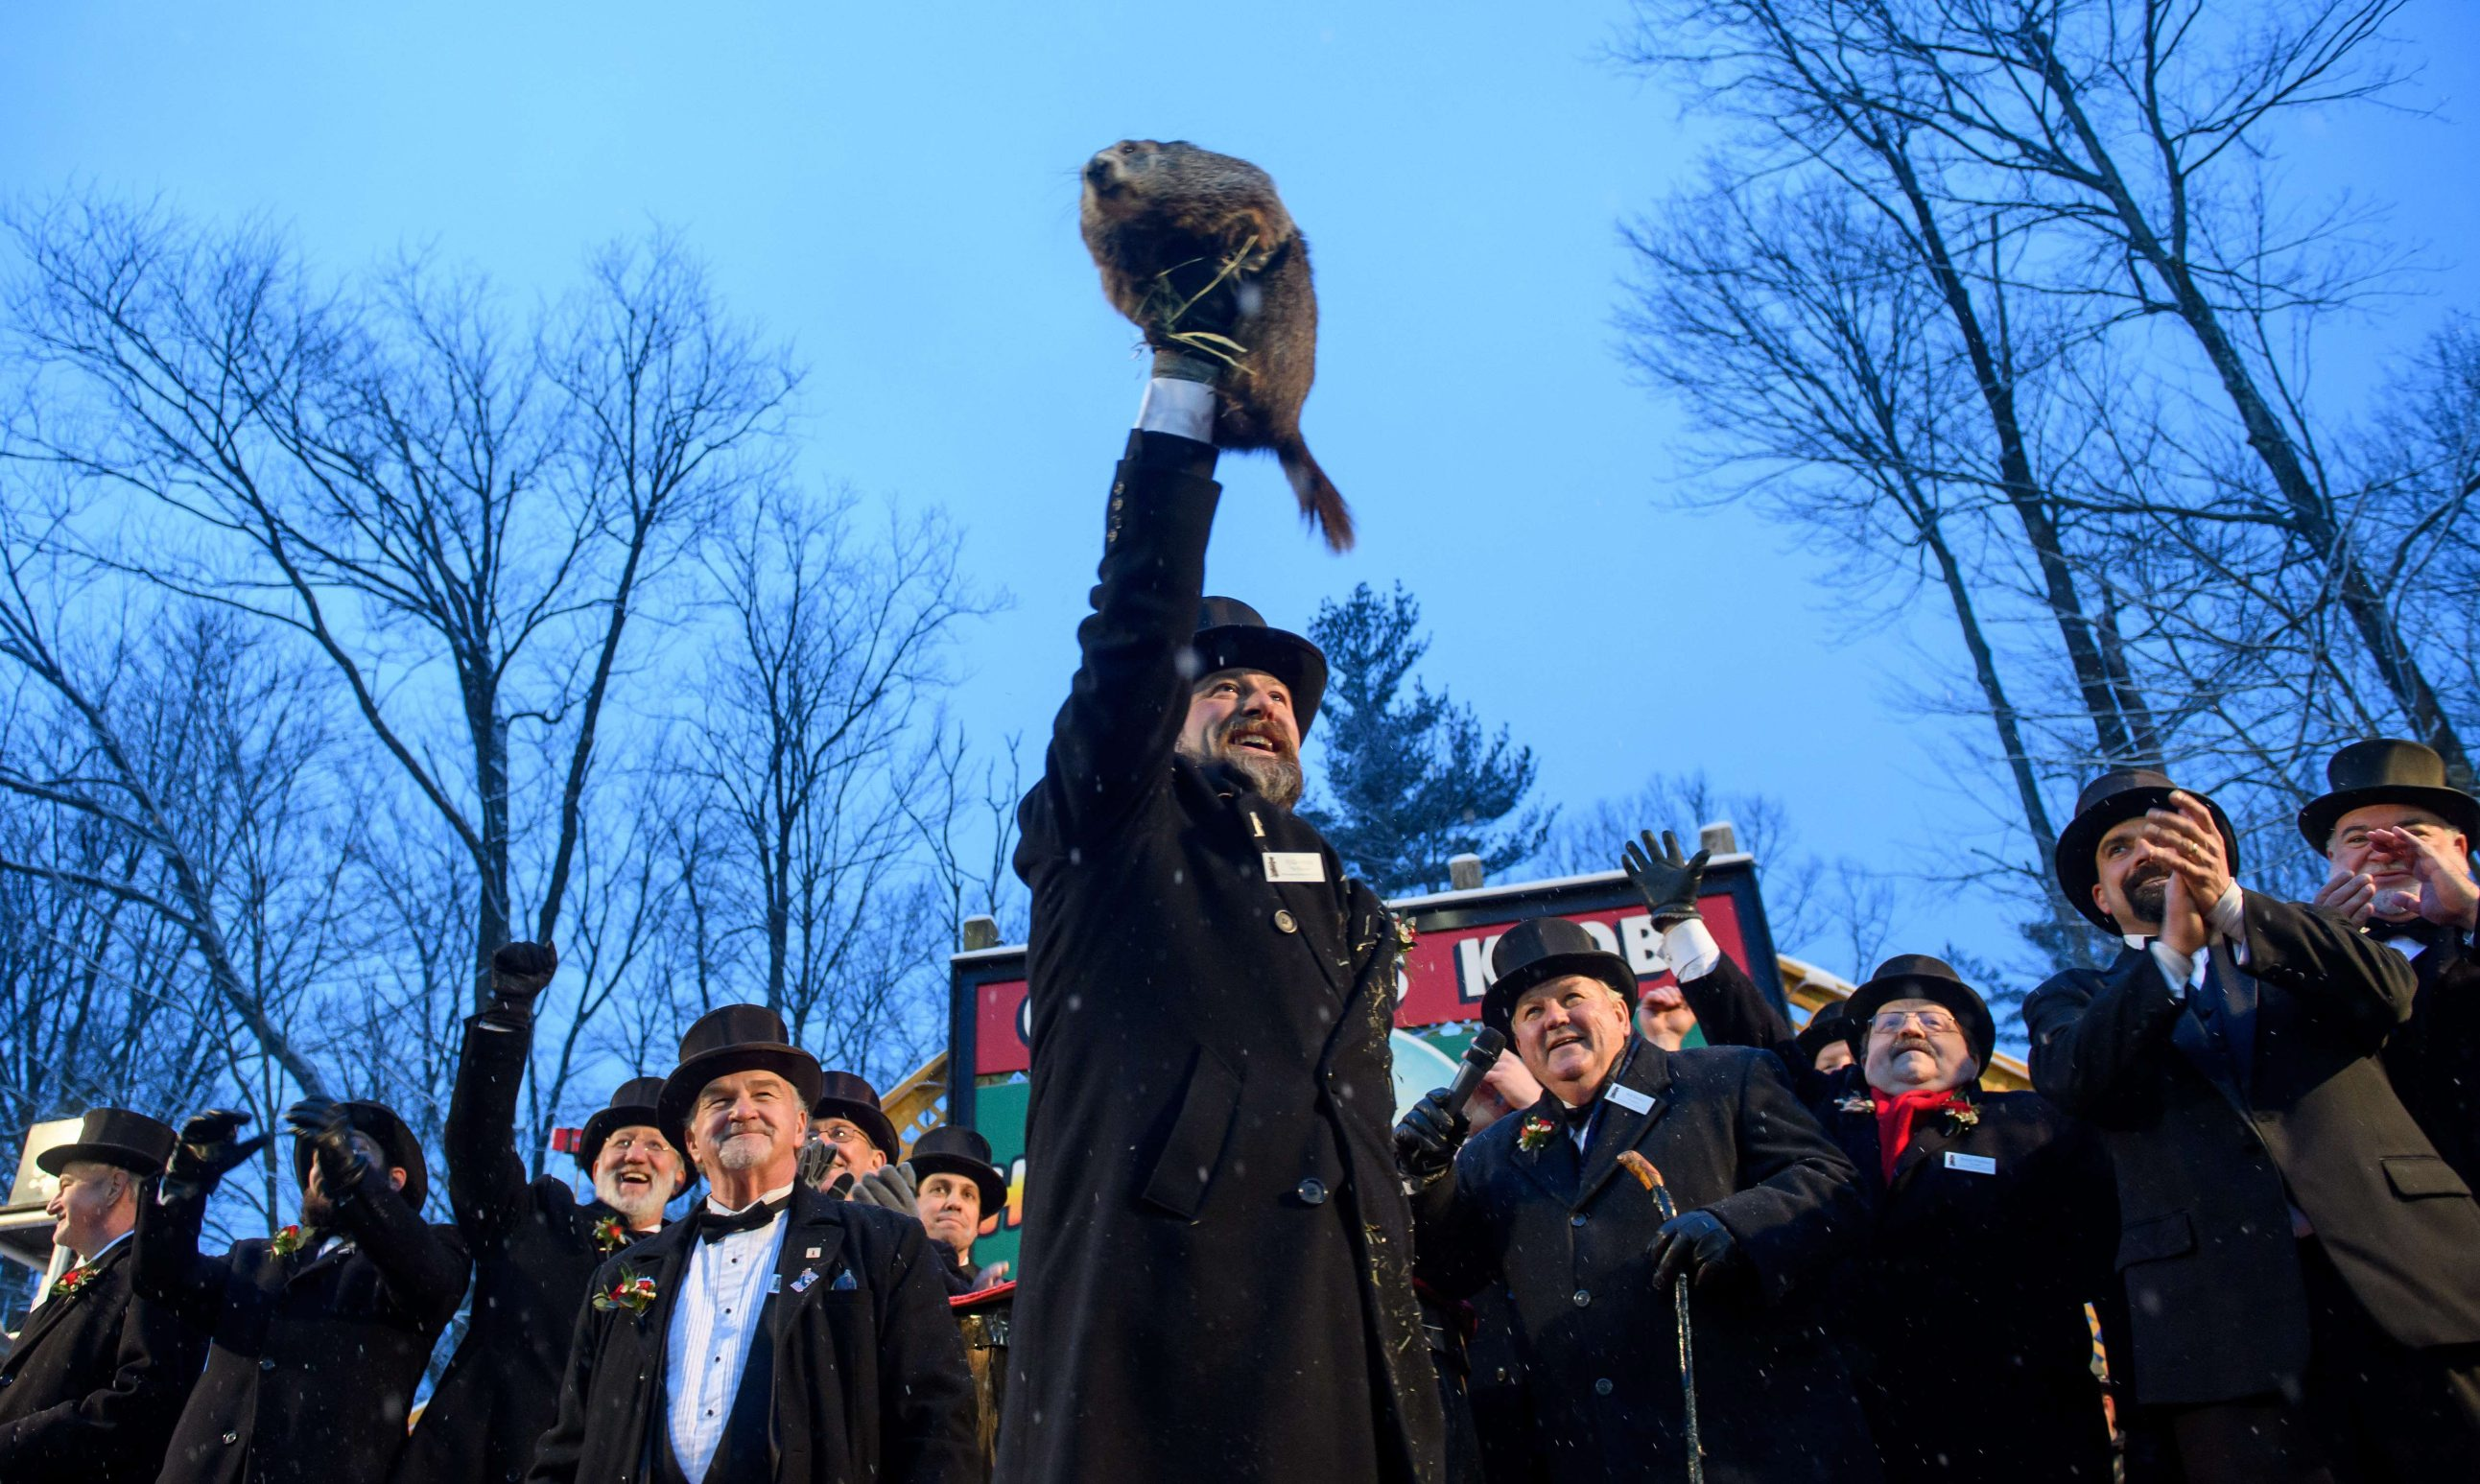 PUNXSUTAWNEY, PA - FEBRUARY 02: Groundhog handler AJ Dereume holds Punxsutawney Phil, who did not see his shadow, predicting an early or late spring during the 134th annual Groundhog Day festivities on February 2, 2020 in Punxsutawney, Pennsylvania. Groundhog Day is a popular tradition in the United States and Canada. A crowd of upwards of 20,000 people spent a night of revelry awaiting the sunrise and the groundhog's exit from his winter den. If Punxsutawney Phil sees his shadow he regards it as an omen of six more weeks of bad weather and returns to his den. Early spring arrives if he does not see his shadow, causing Phil to remain above ground.   Jeff Swensen/Getty Images/AFP == FOR NEWSPAPERS, INTERNET, TELCOS & TELEVISION USE ONLY ==